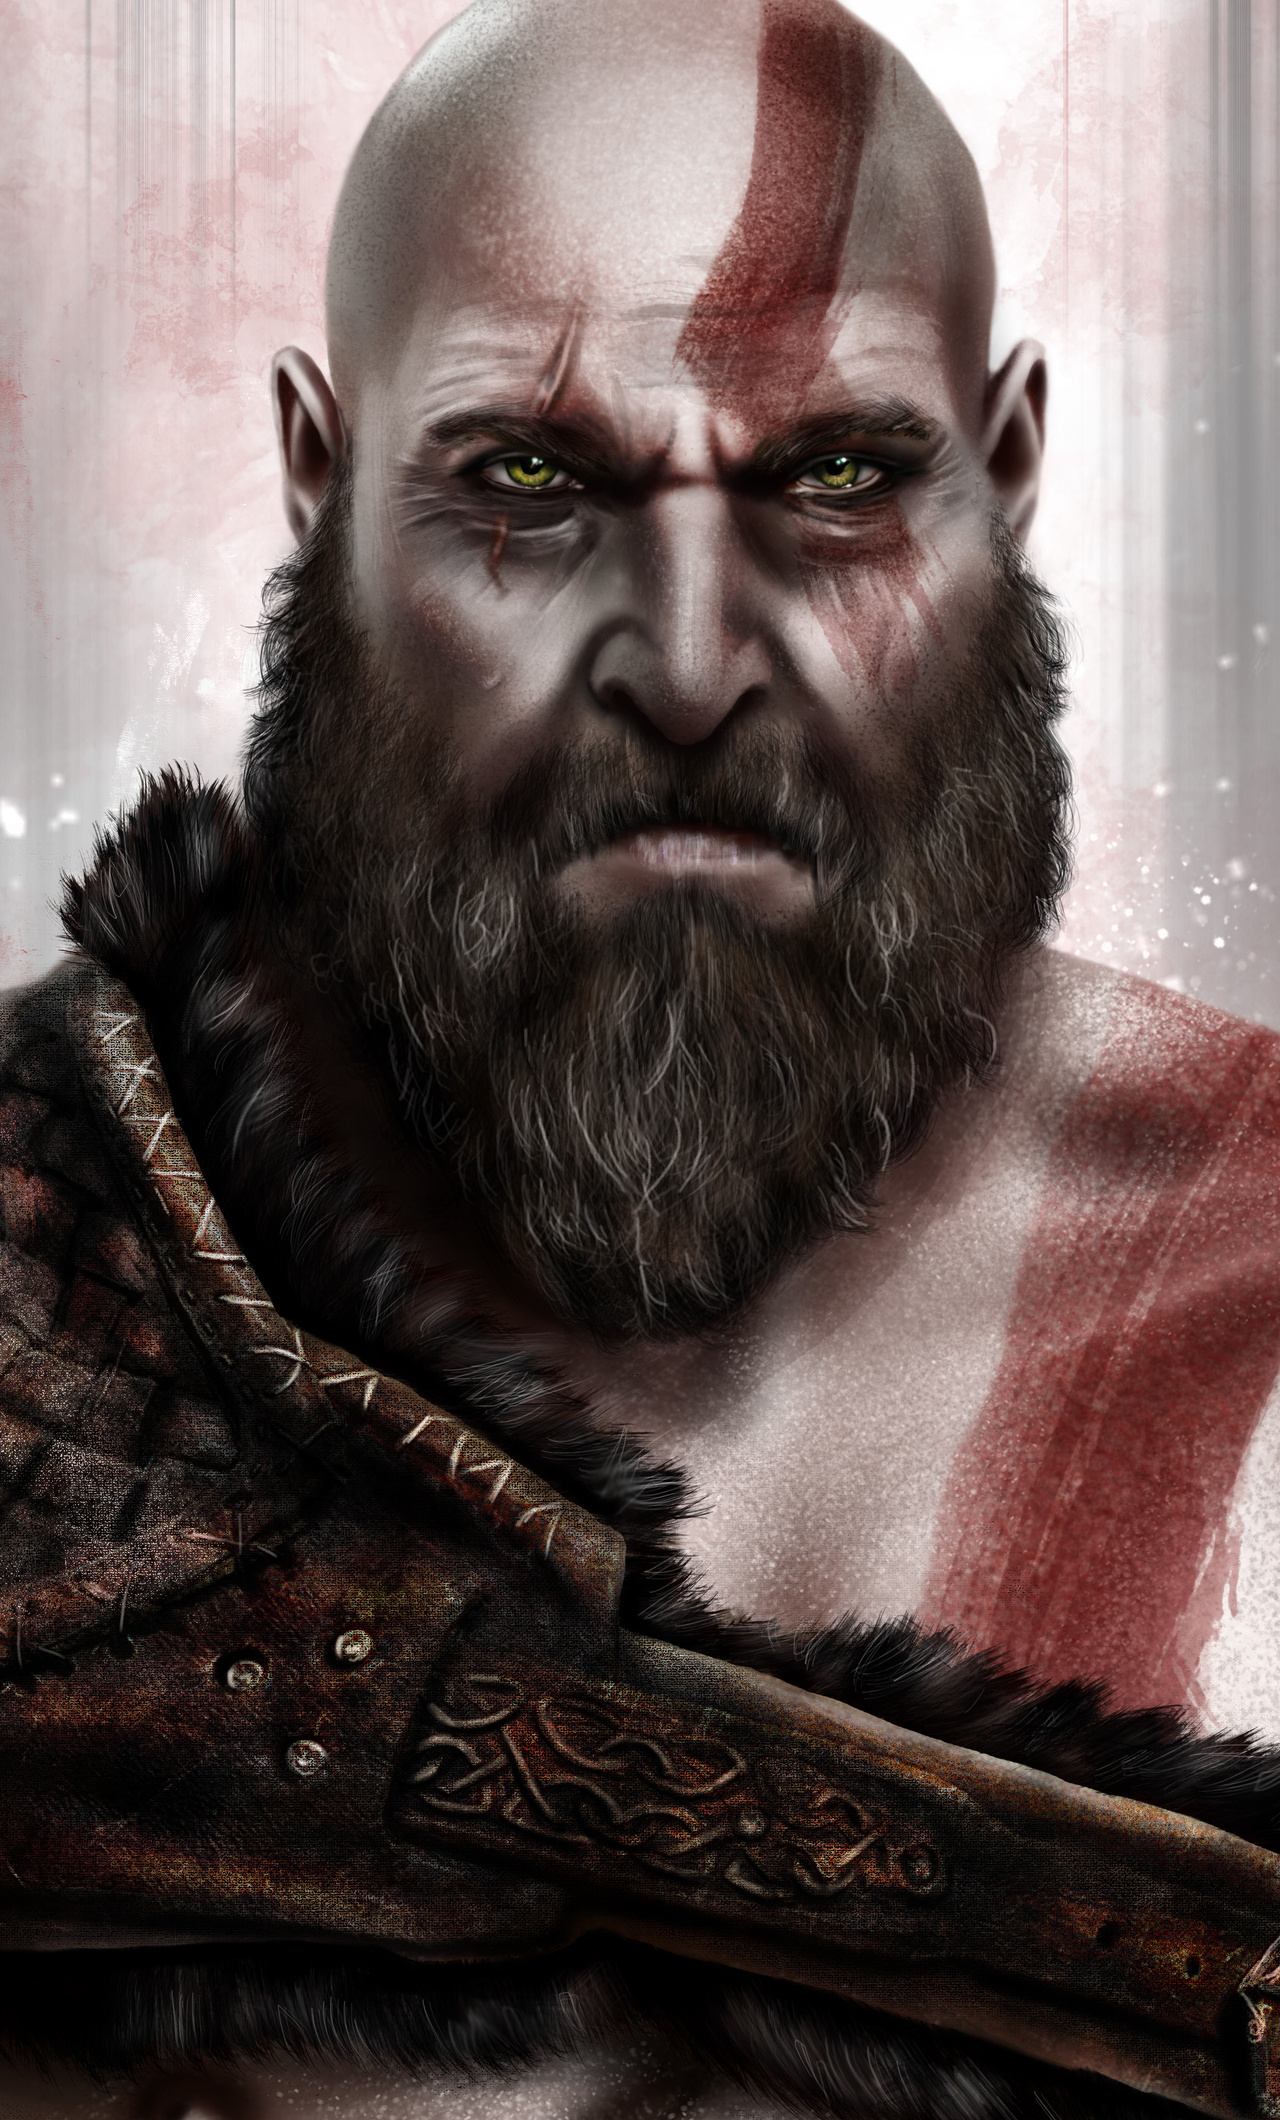 kratos-god-of-war-8k-yn.jpg